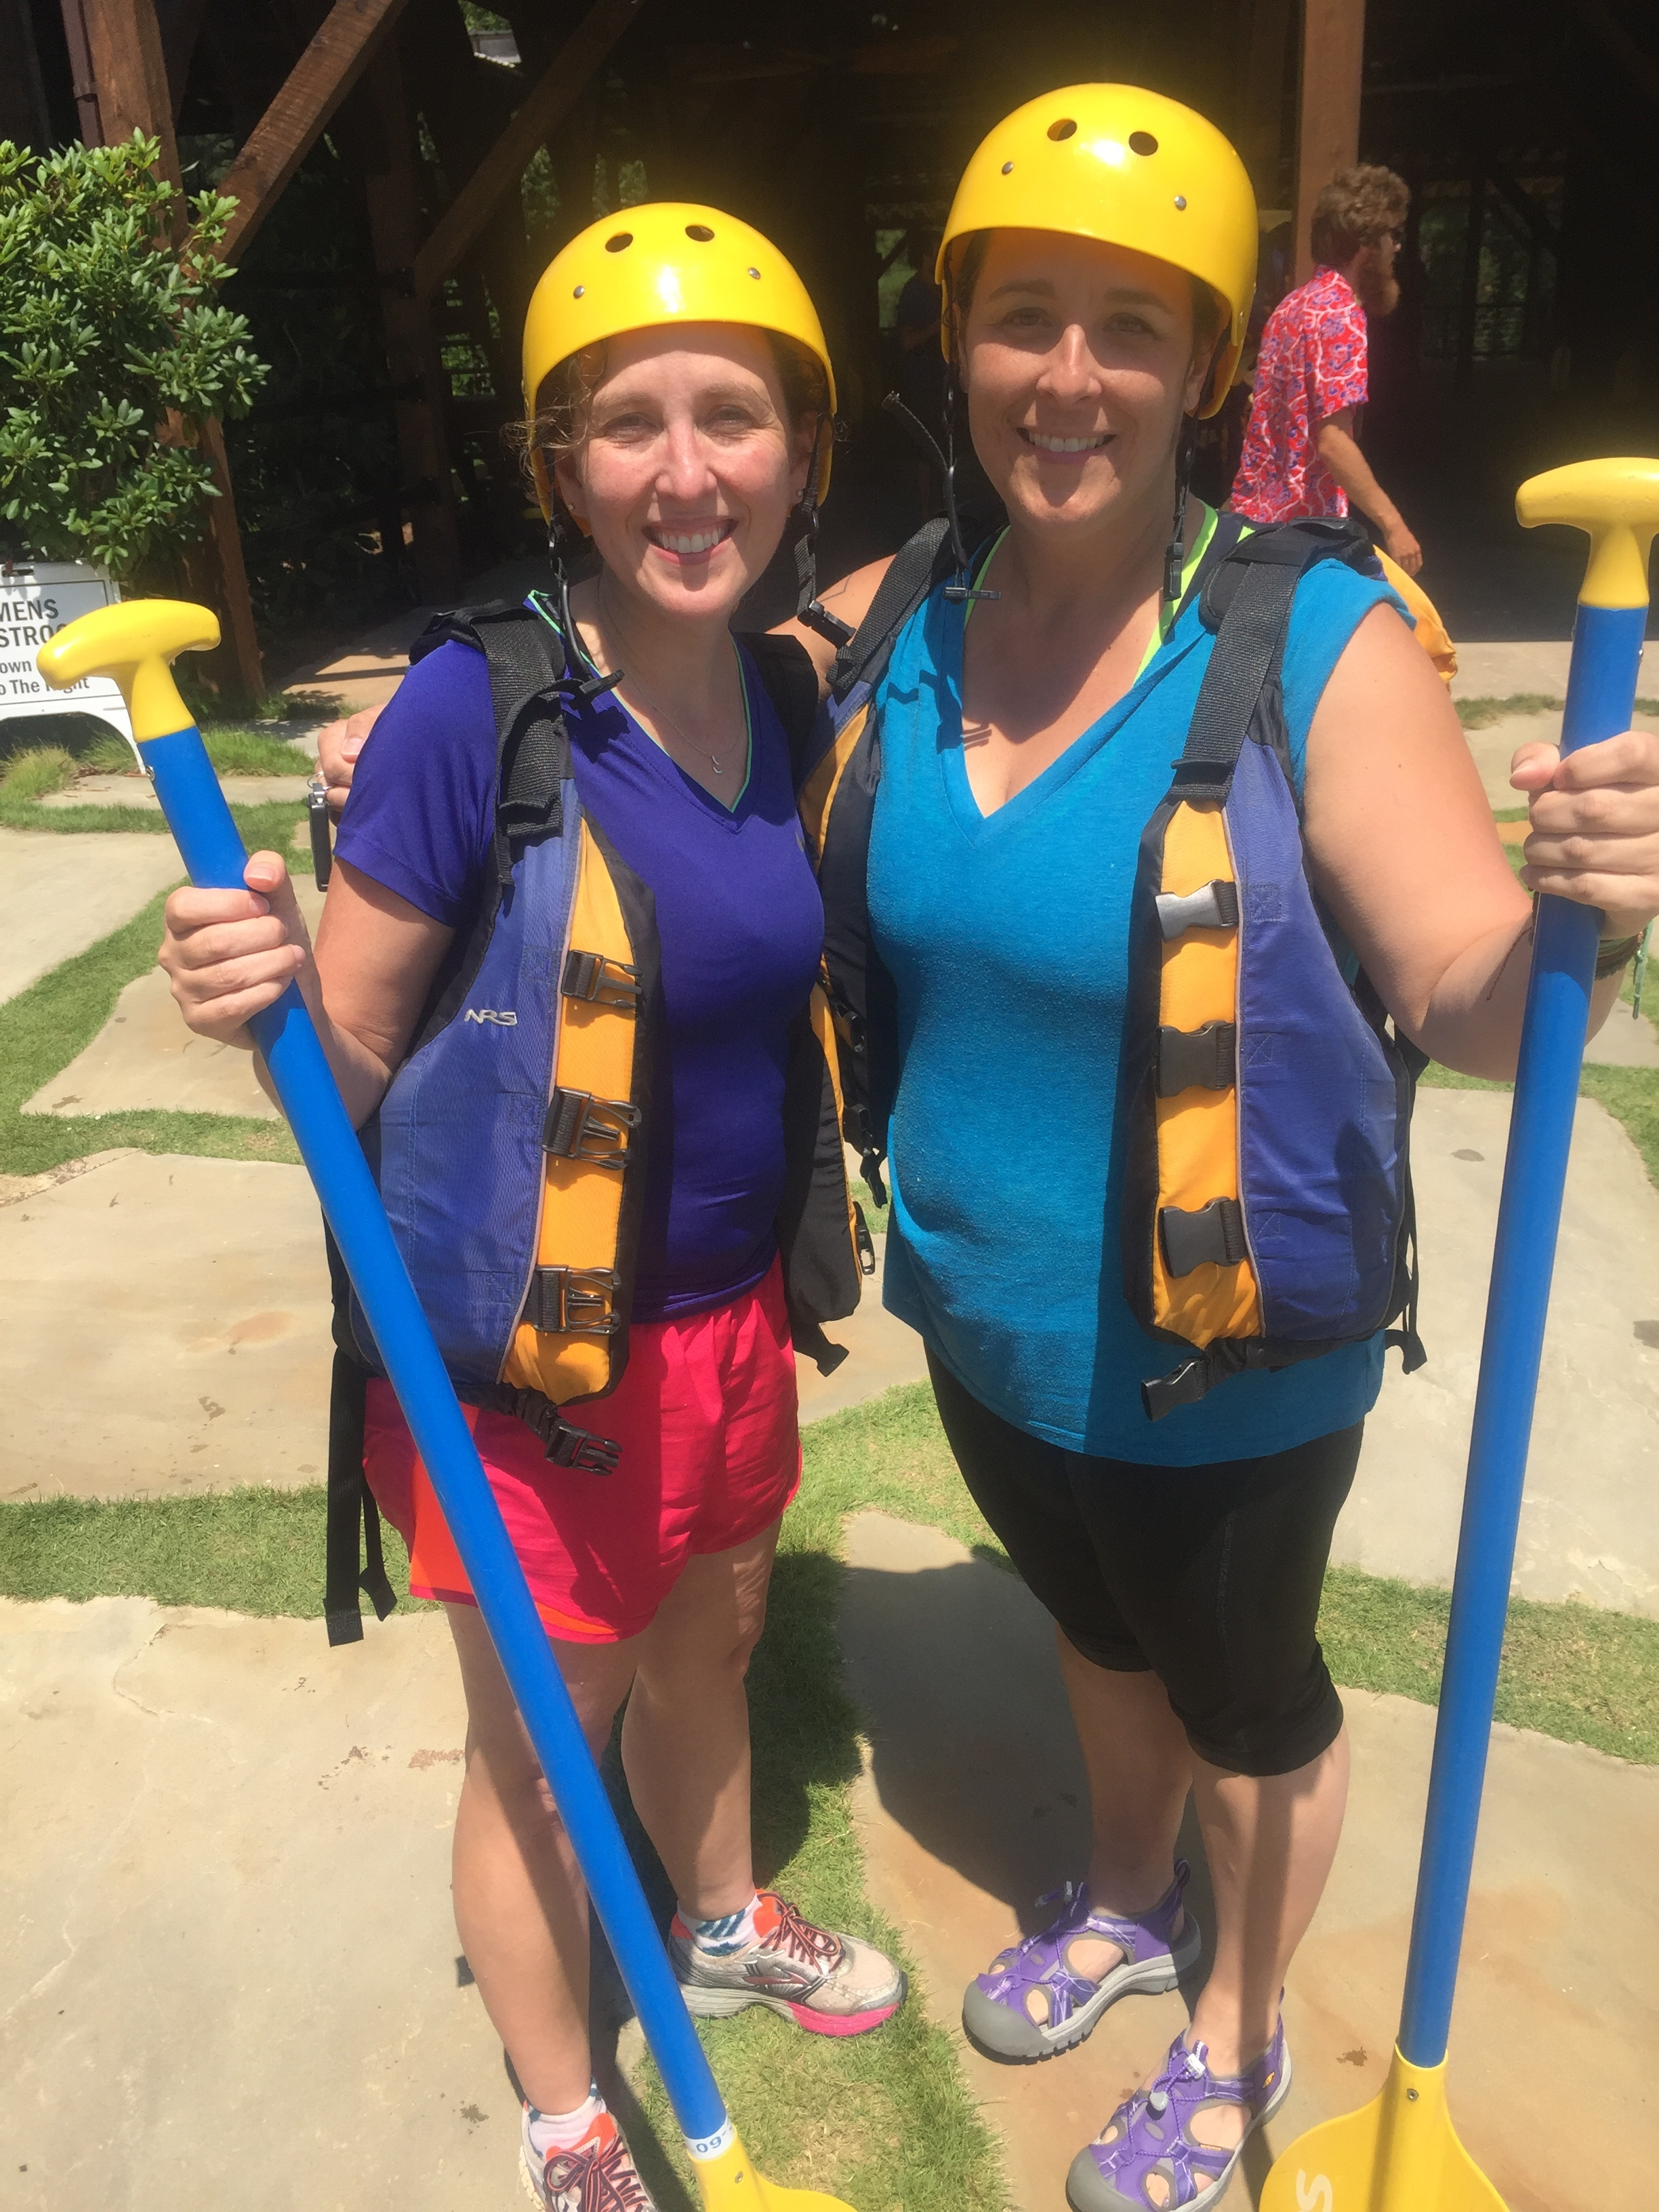 Whitewater rafting with friend Stephanie